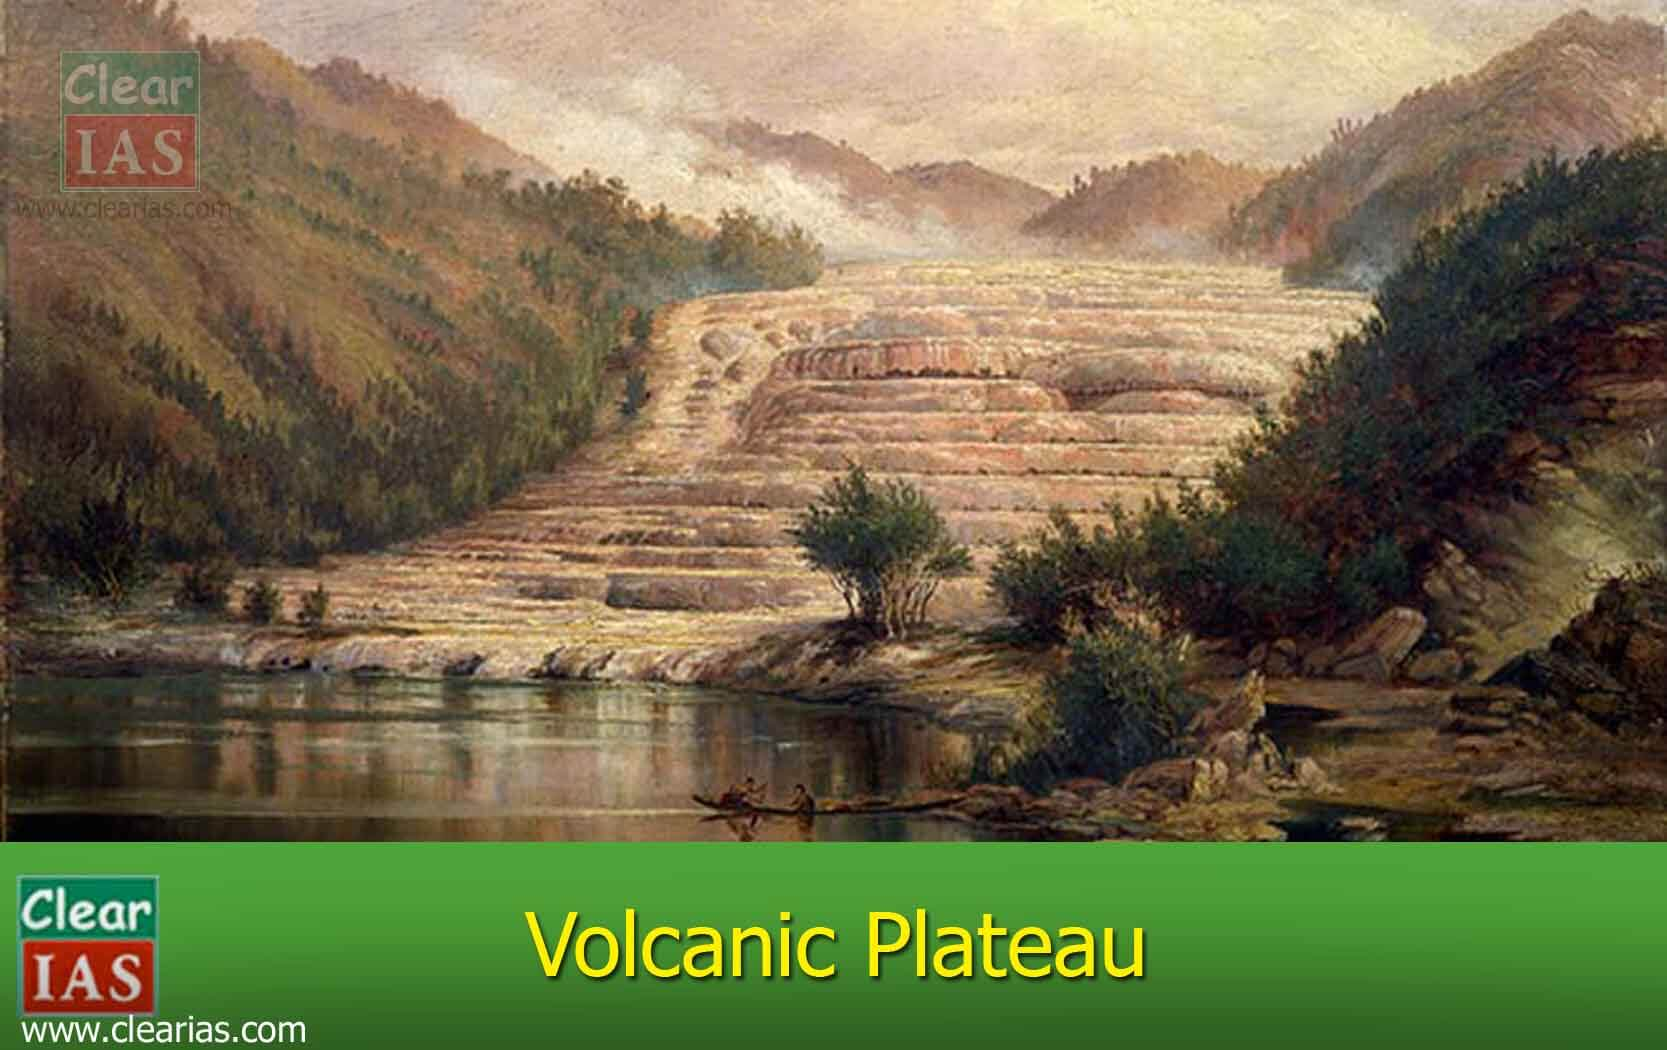 hight resolution of image of a volcanic plateau